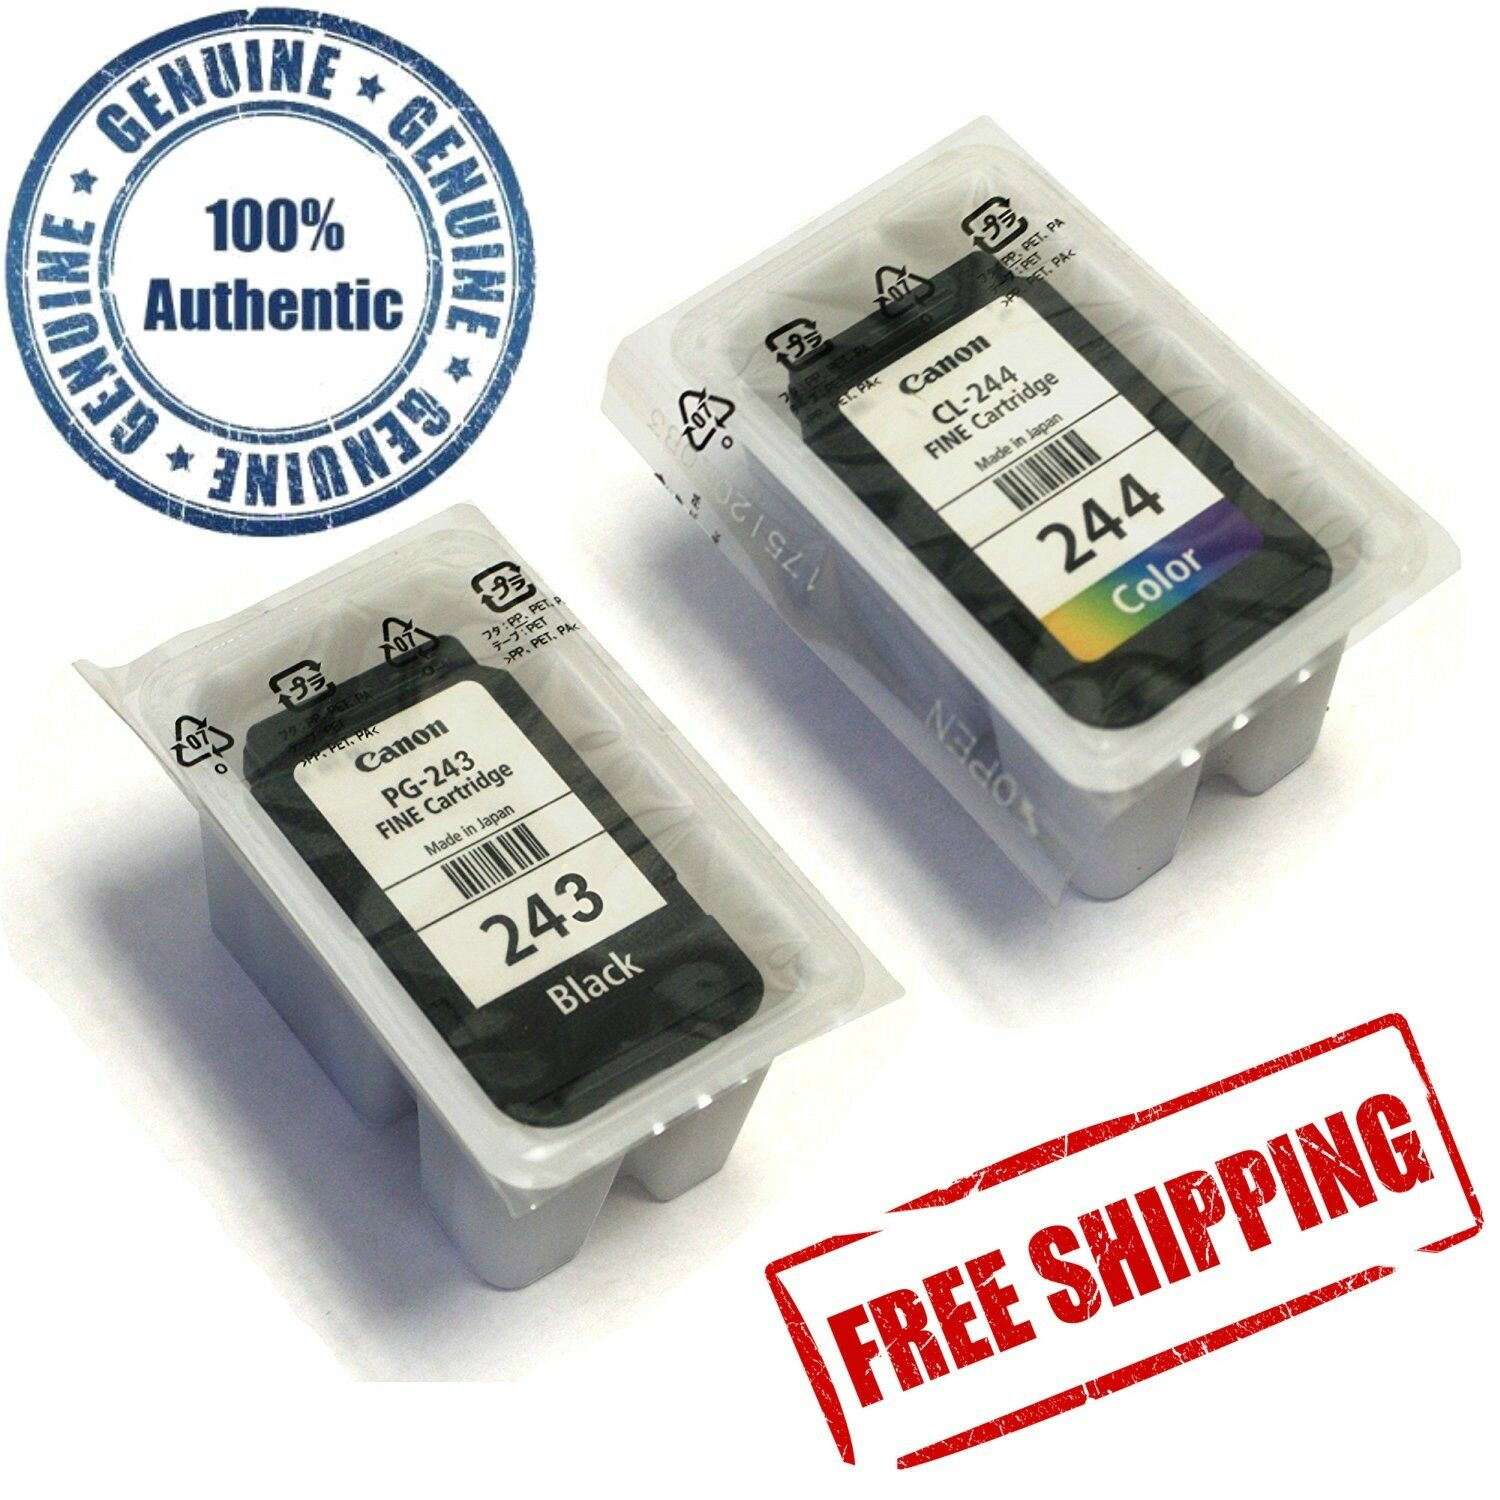 Pair Of Genuine Canon Ink Cartridge Cl 244 Color And Pg 243 Black 57 Original Norton Secured Powered By Verisign